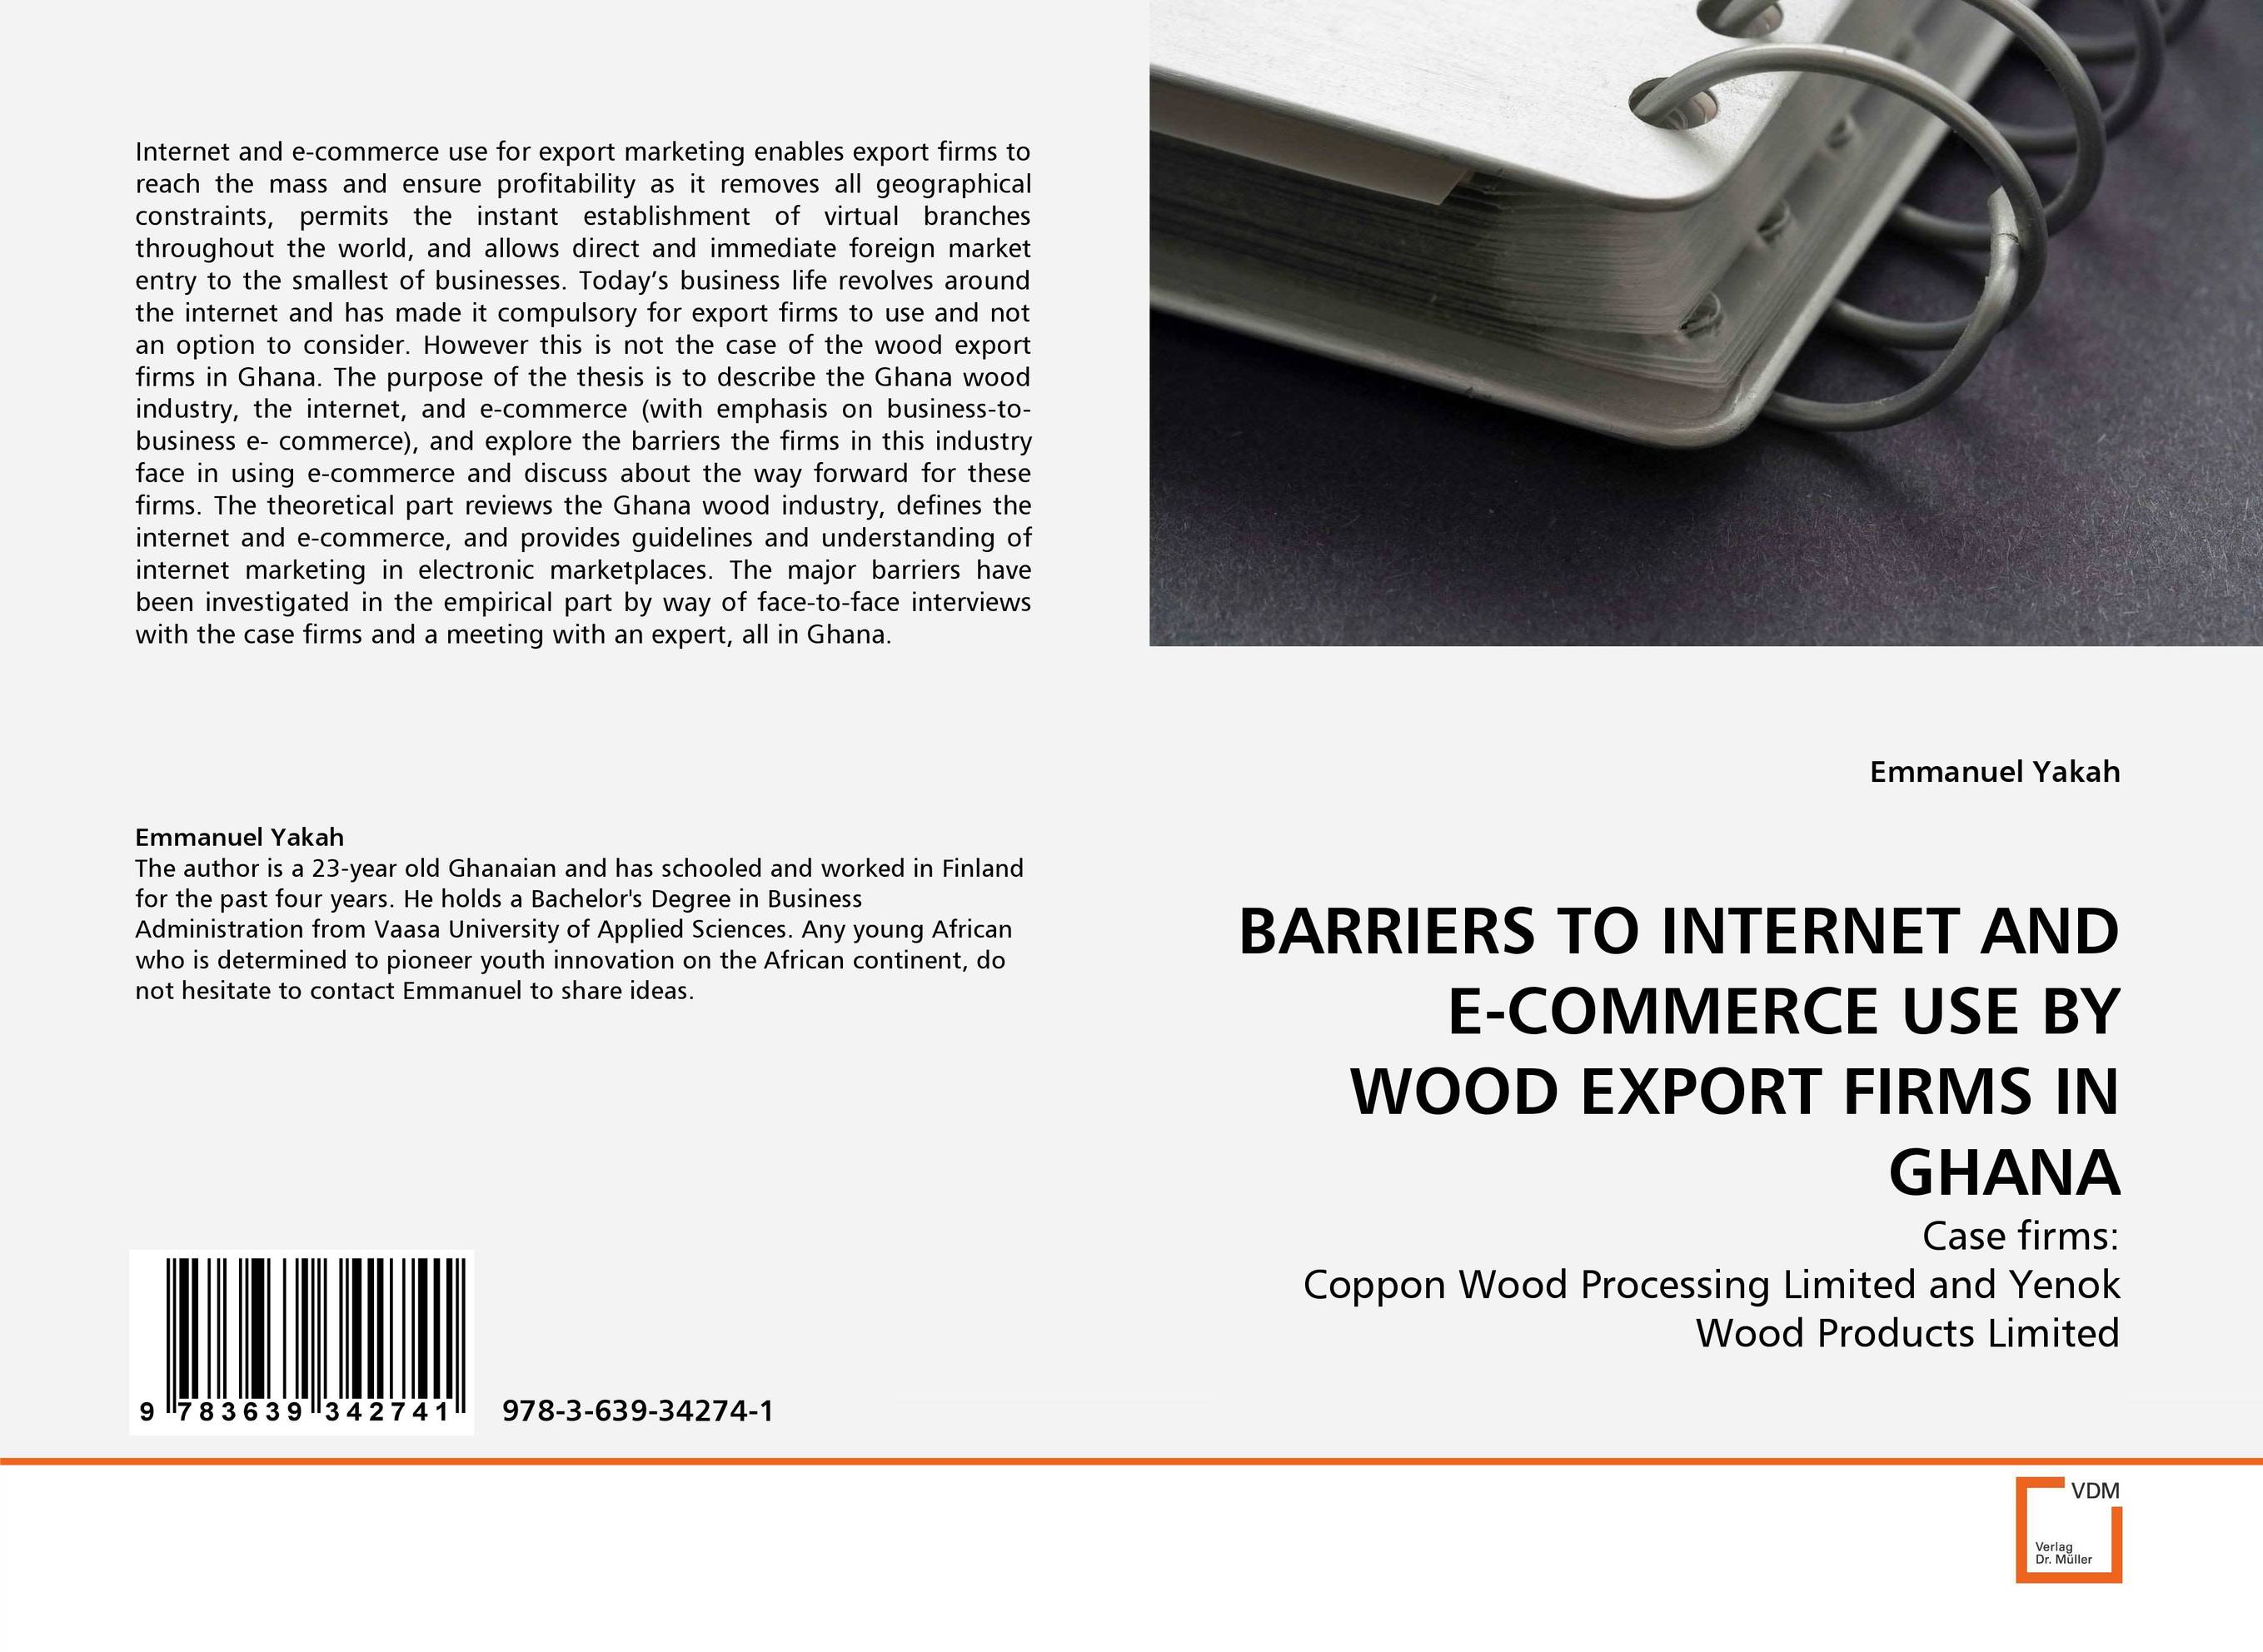 BARRIERS TO INTERNET AND E-COMMERCE USE BY WOOD EXPORT FIRMS IN GHANA e commerce a new business tool